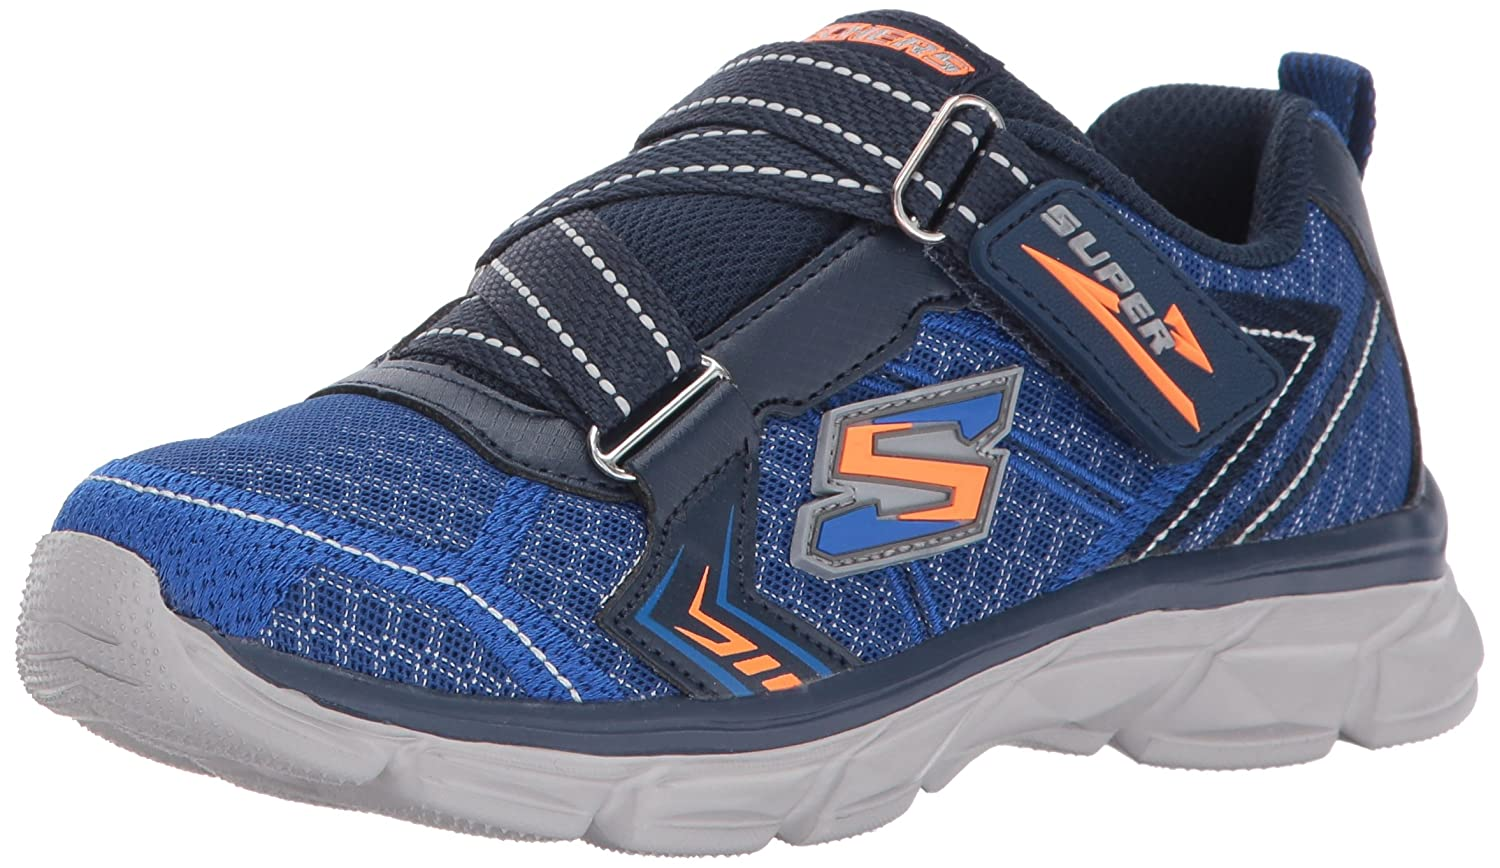 bleu Navy 33.5 EU Skechers Enfants Enfants' Advance-Power Tread paniers